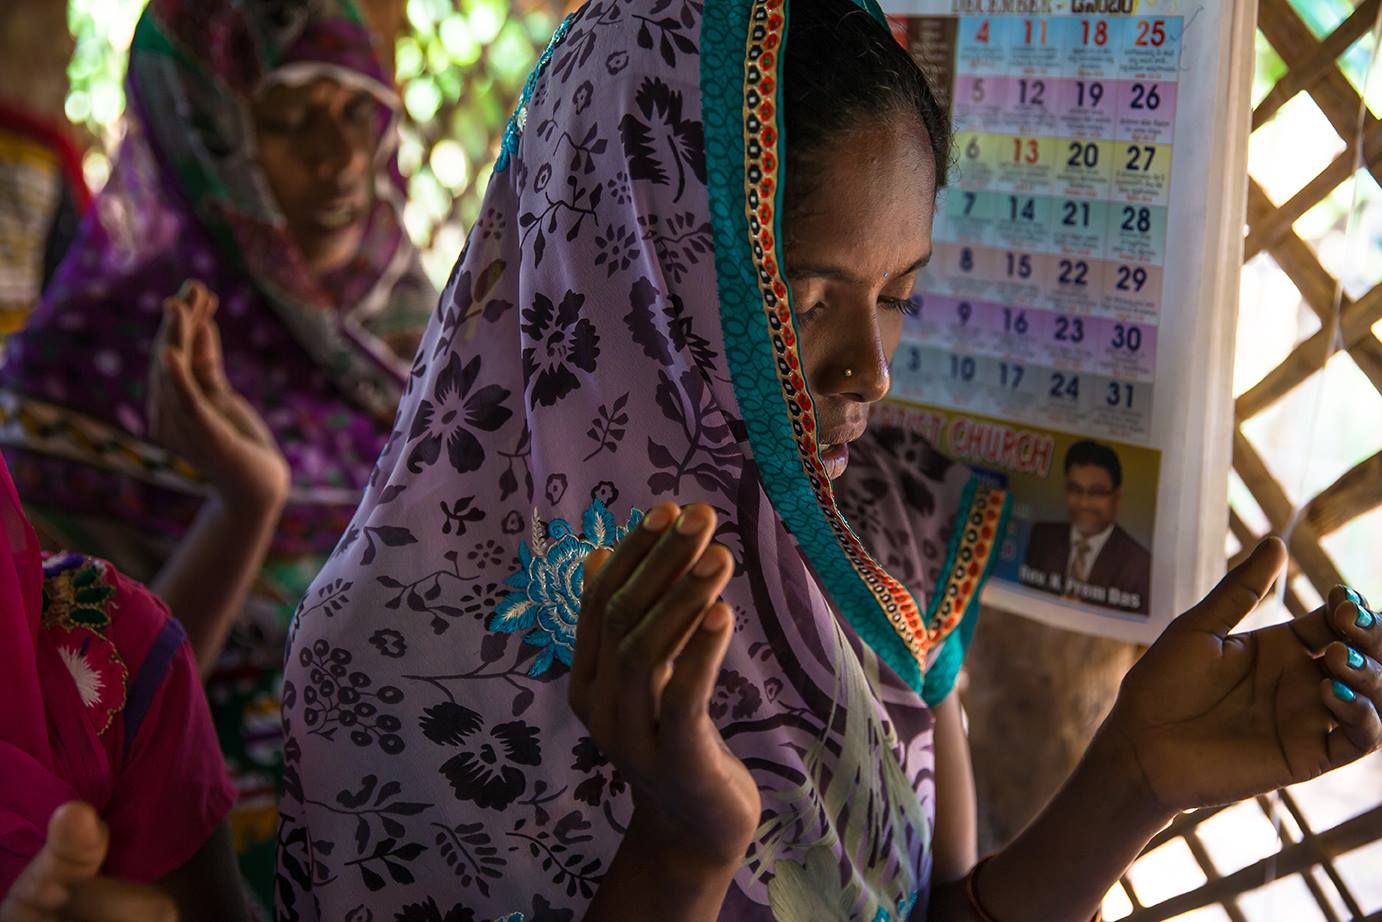 God is moving amidst stories of Christian persecution in India